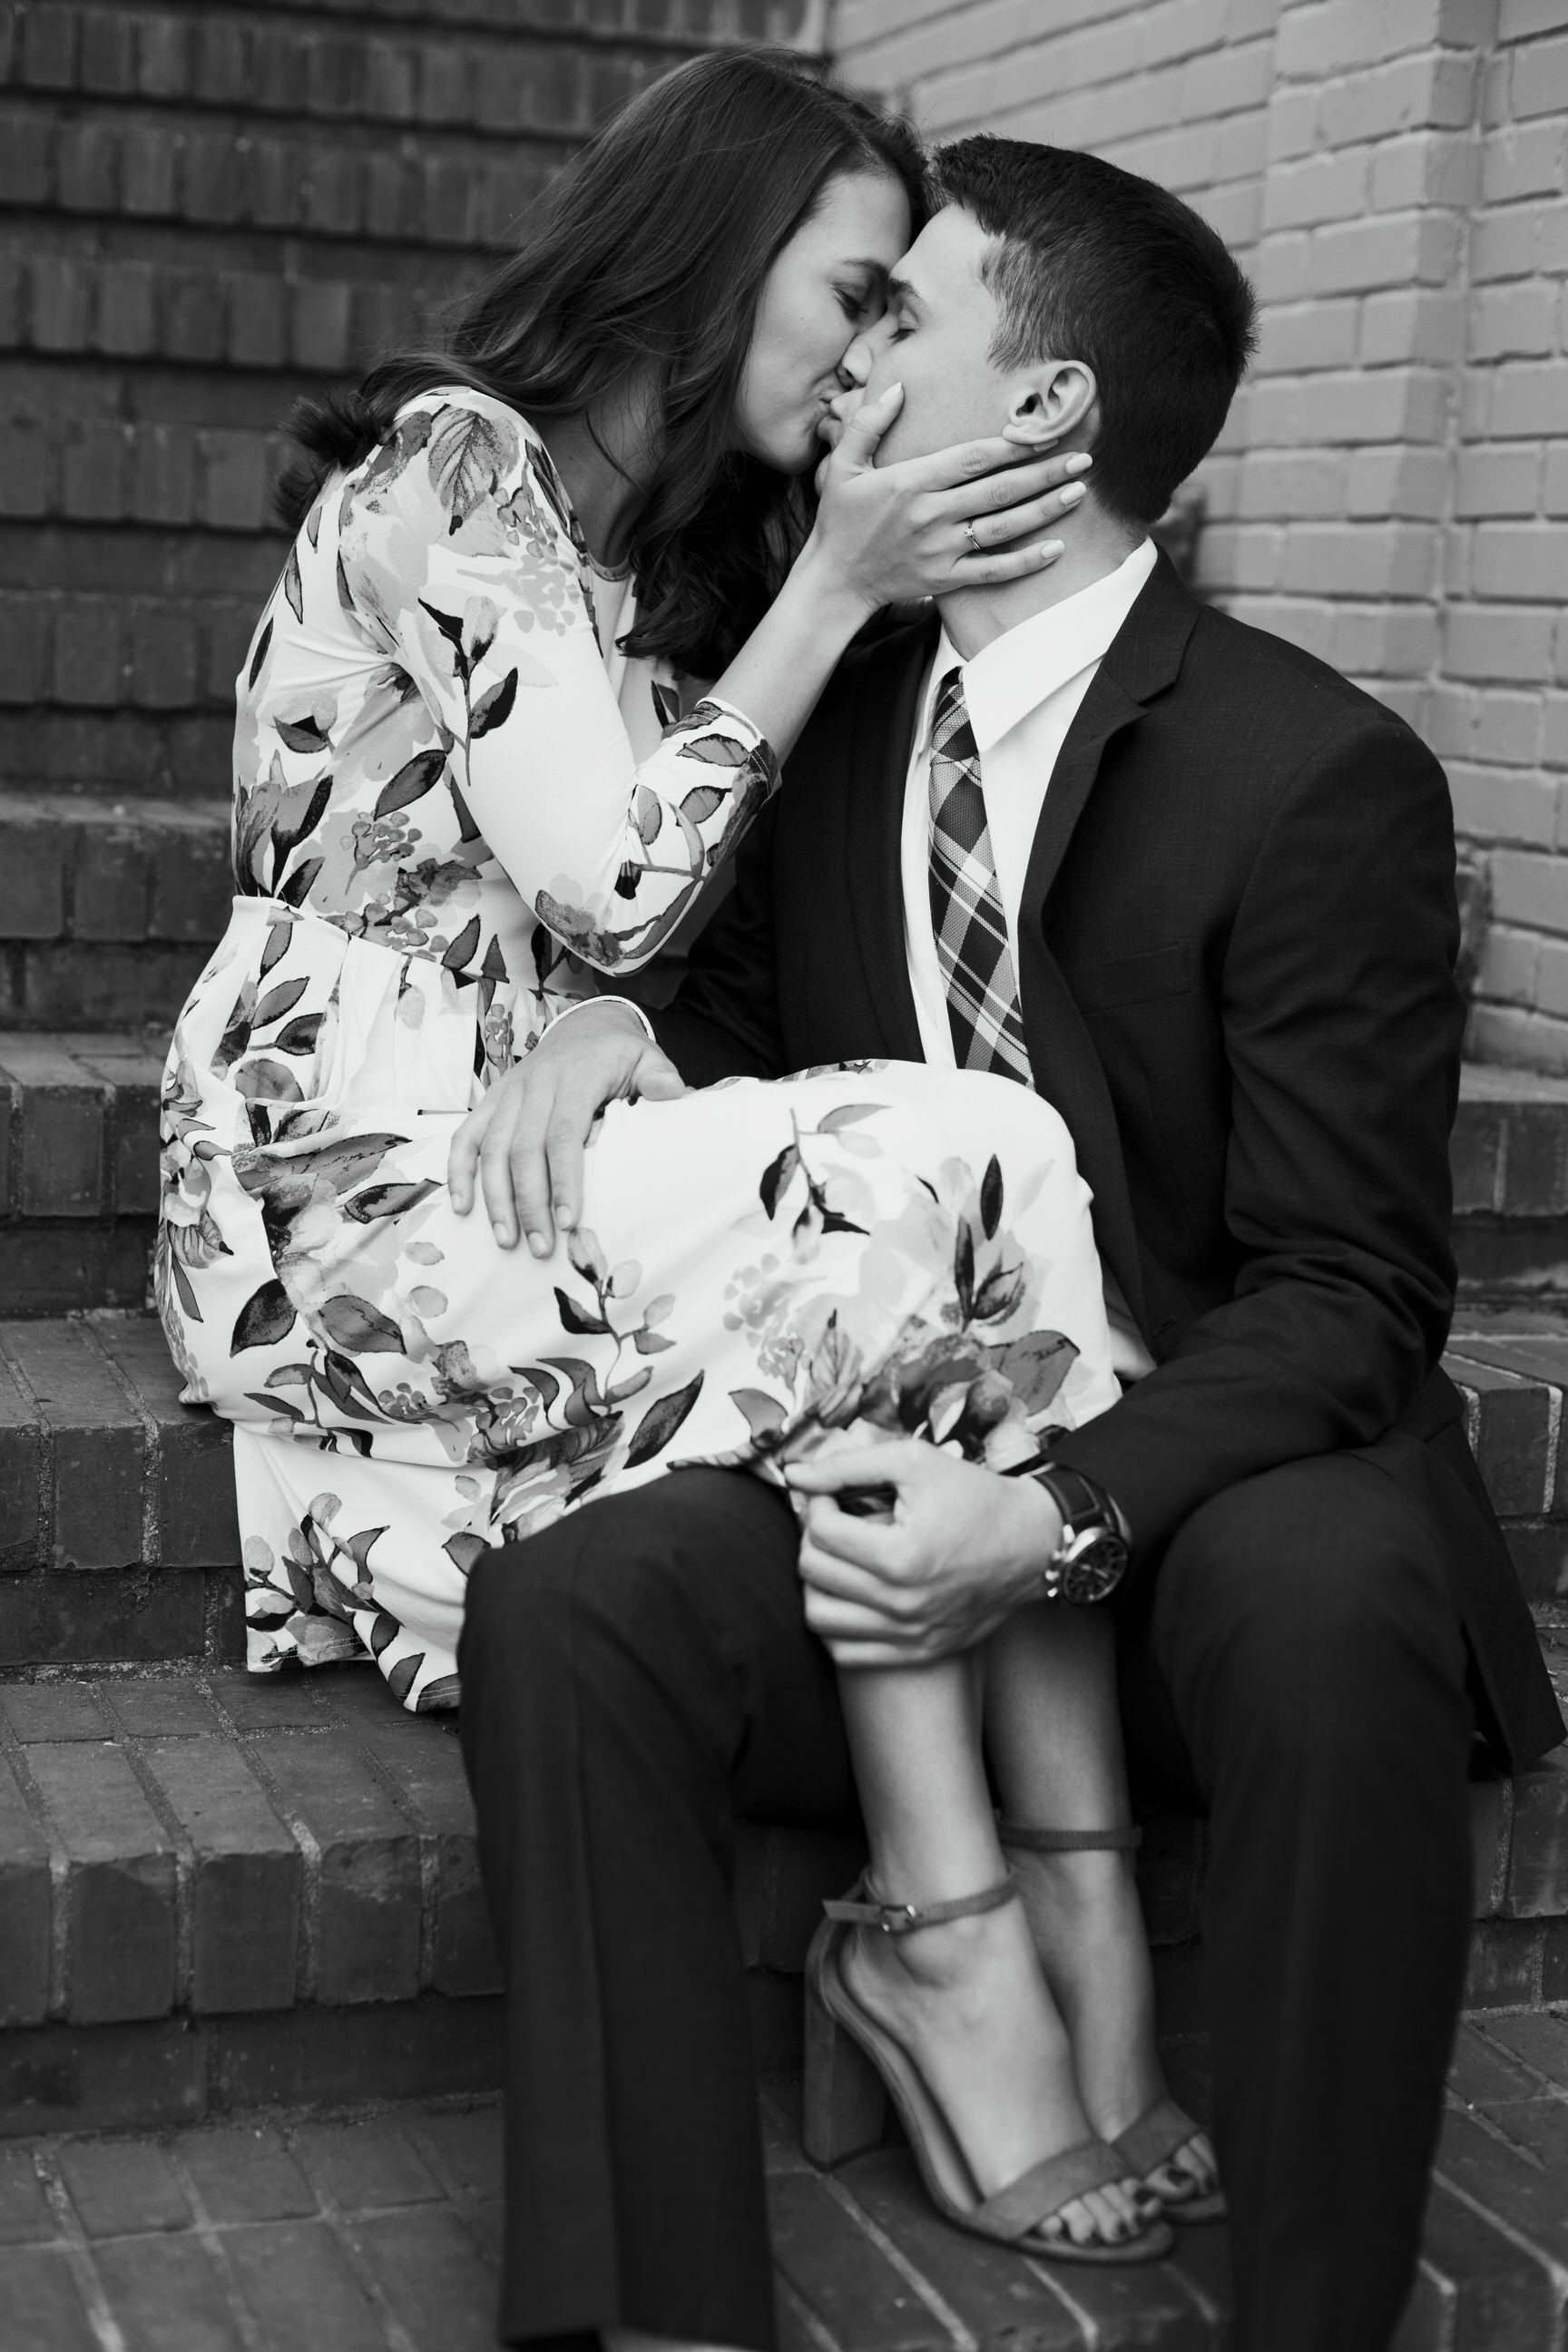 downtown-wilmington-nc-wedding-photographer-callie-hunter_16.jpg